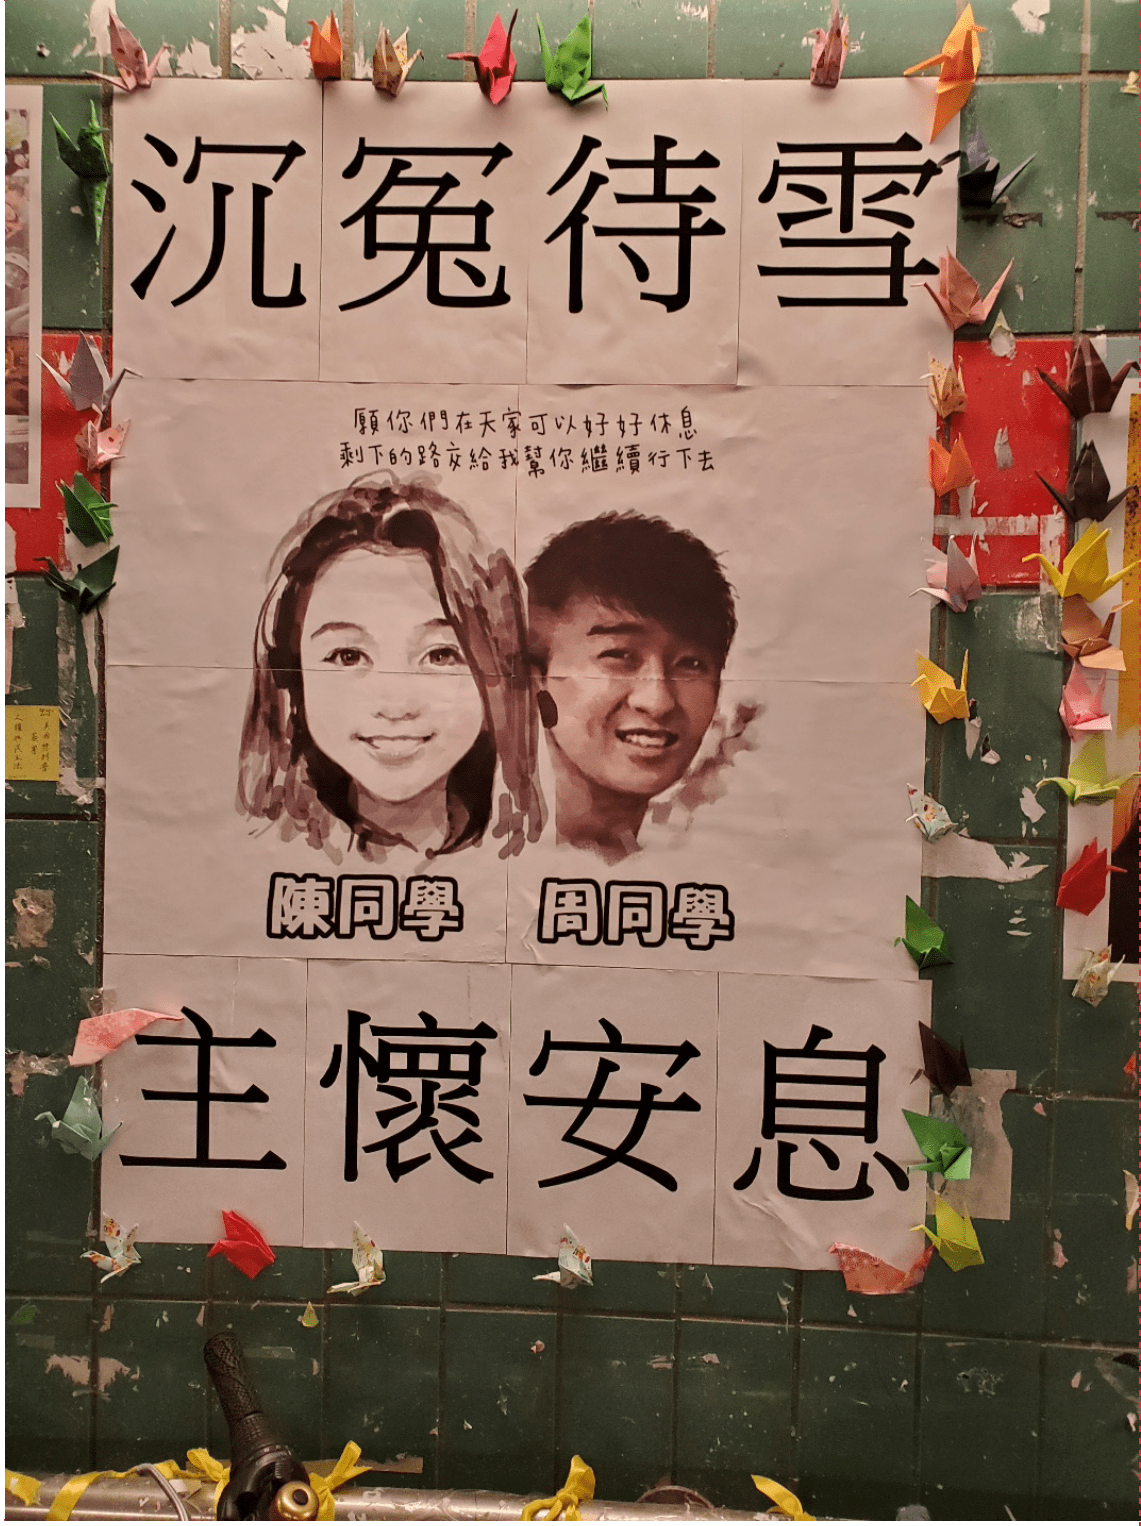 Poster that shows two young Hong Kongers who died, with Chinese characters.